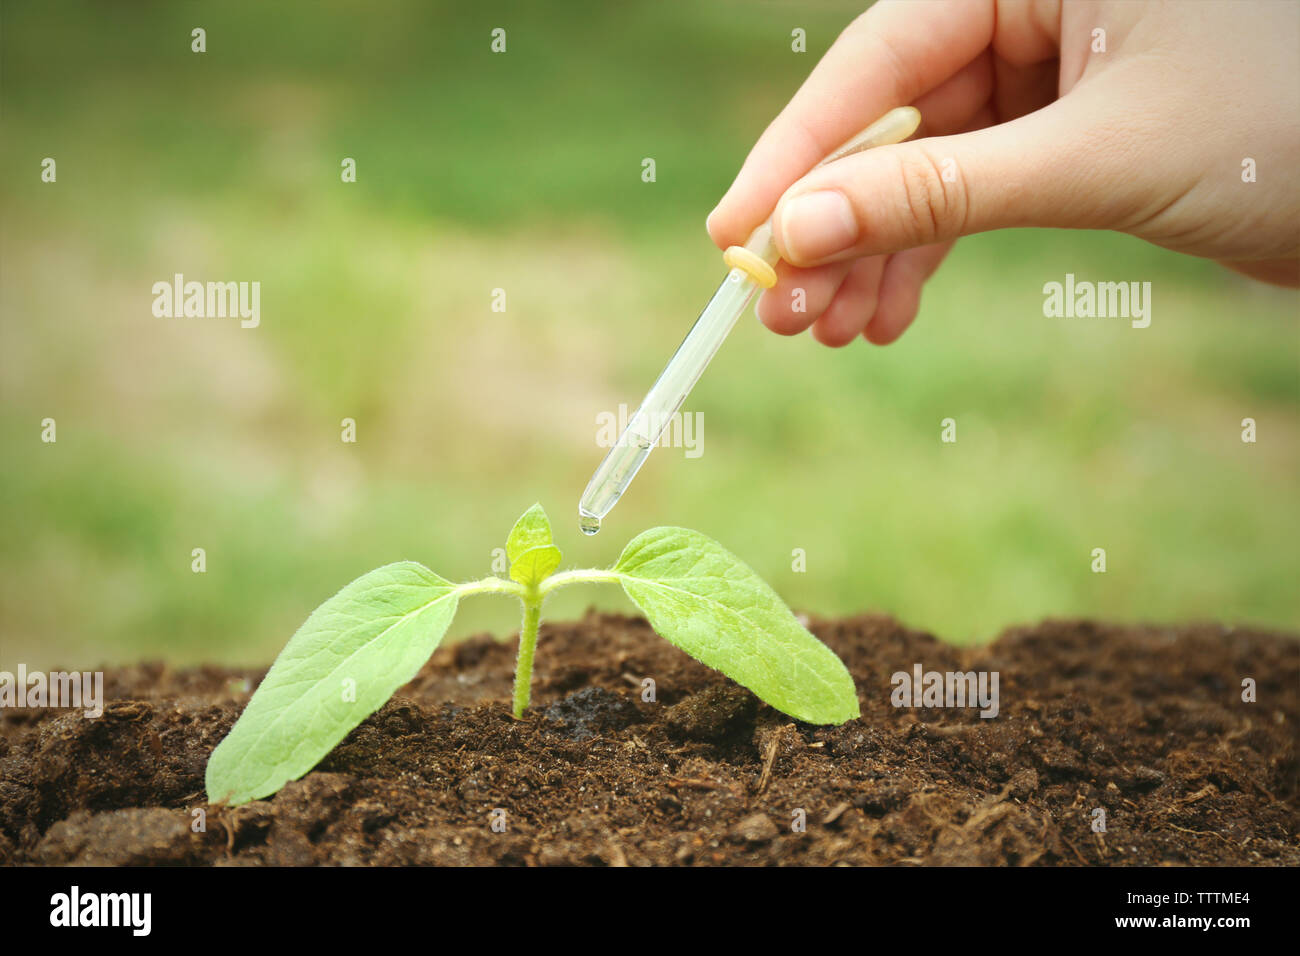 Woman hand watering plant in garden - Stock Image